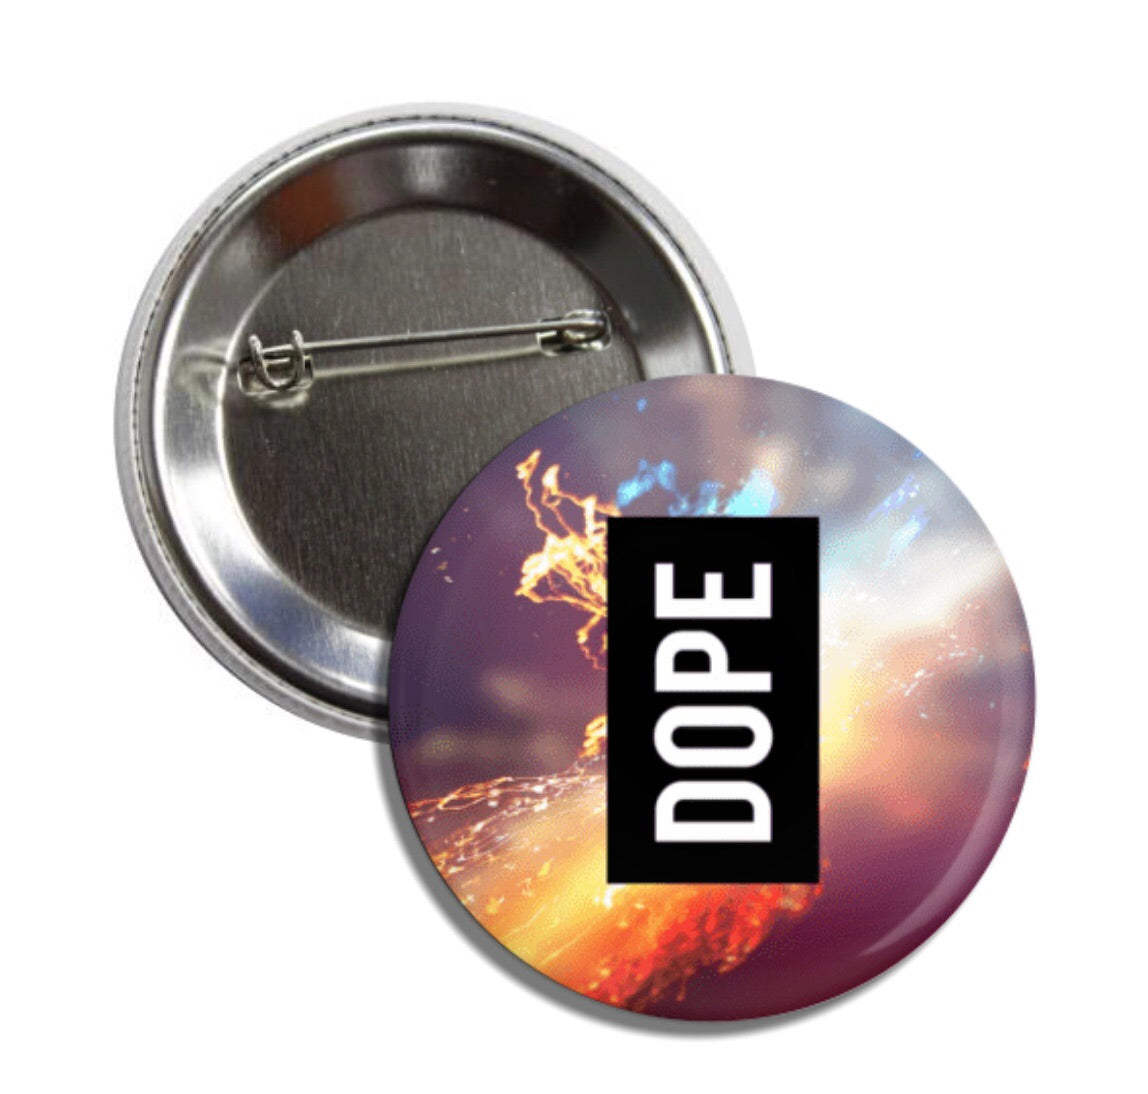 Trippy dope button